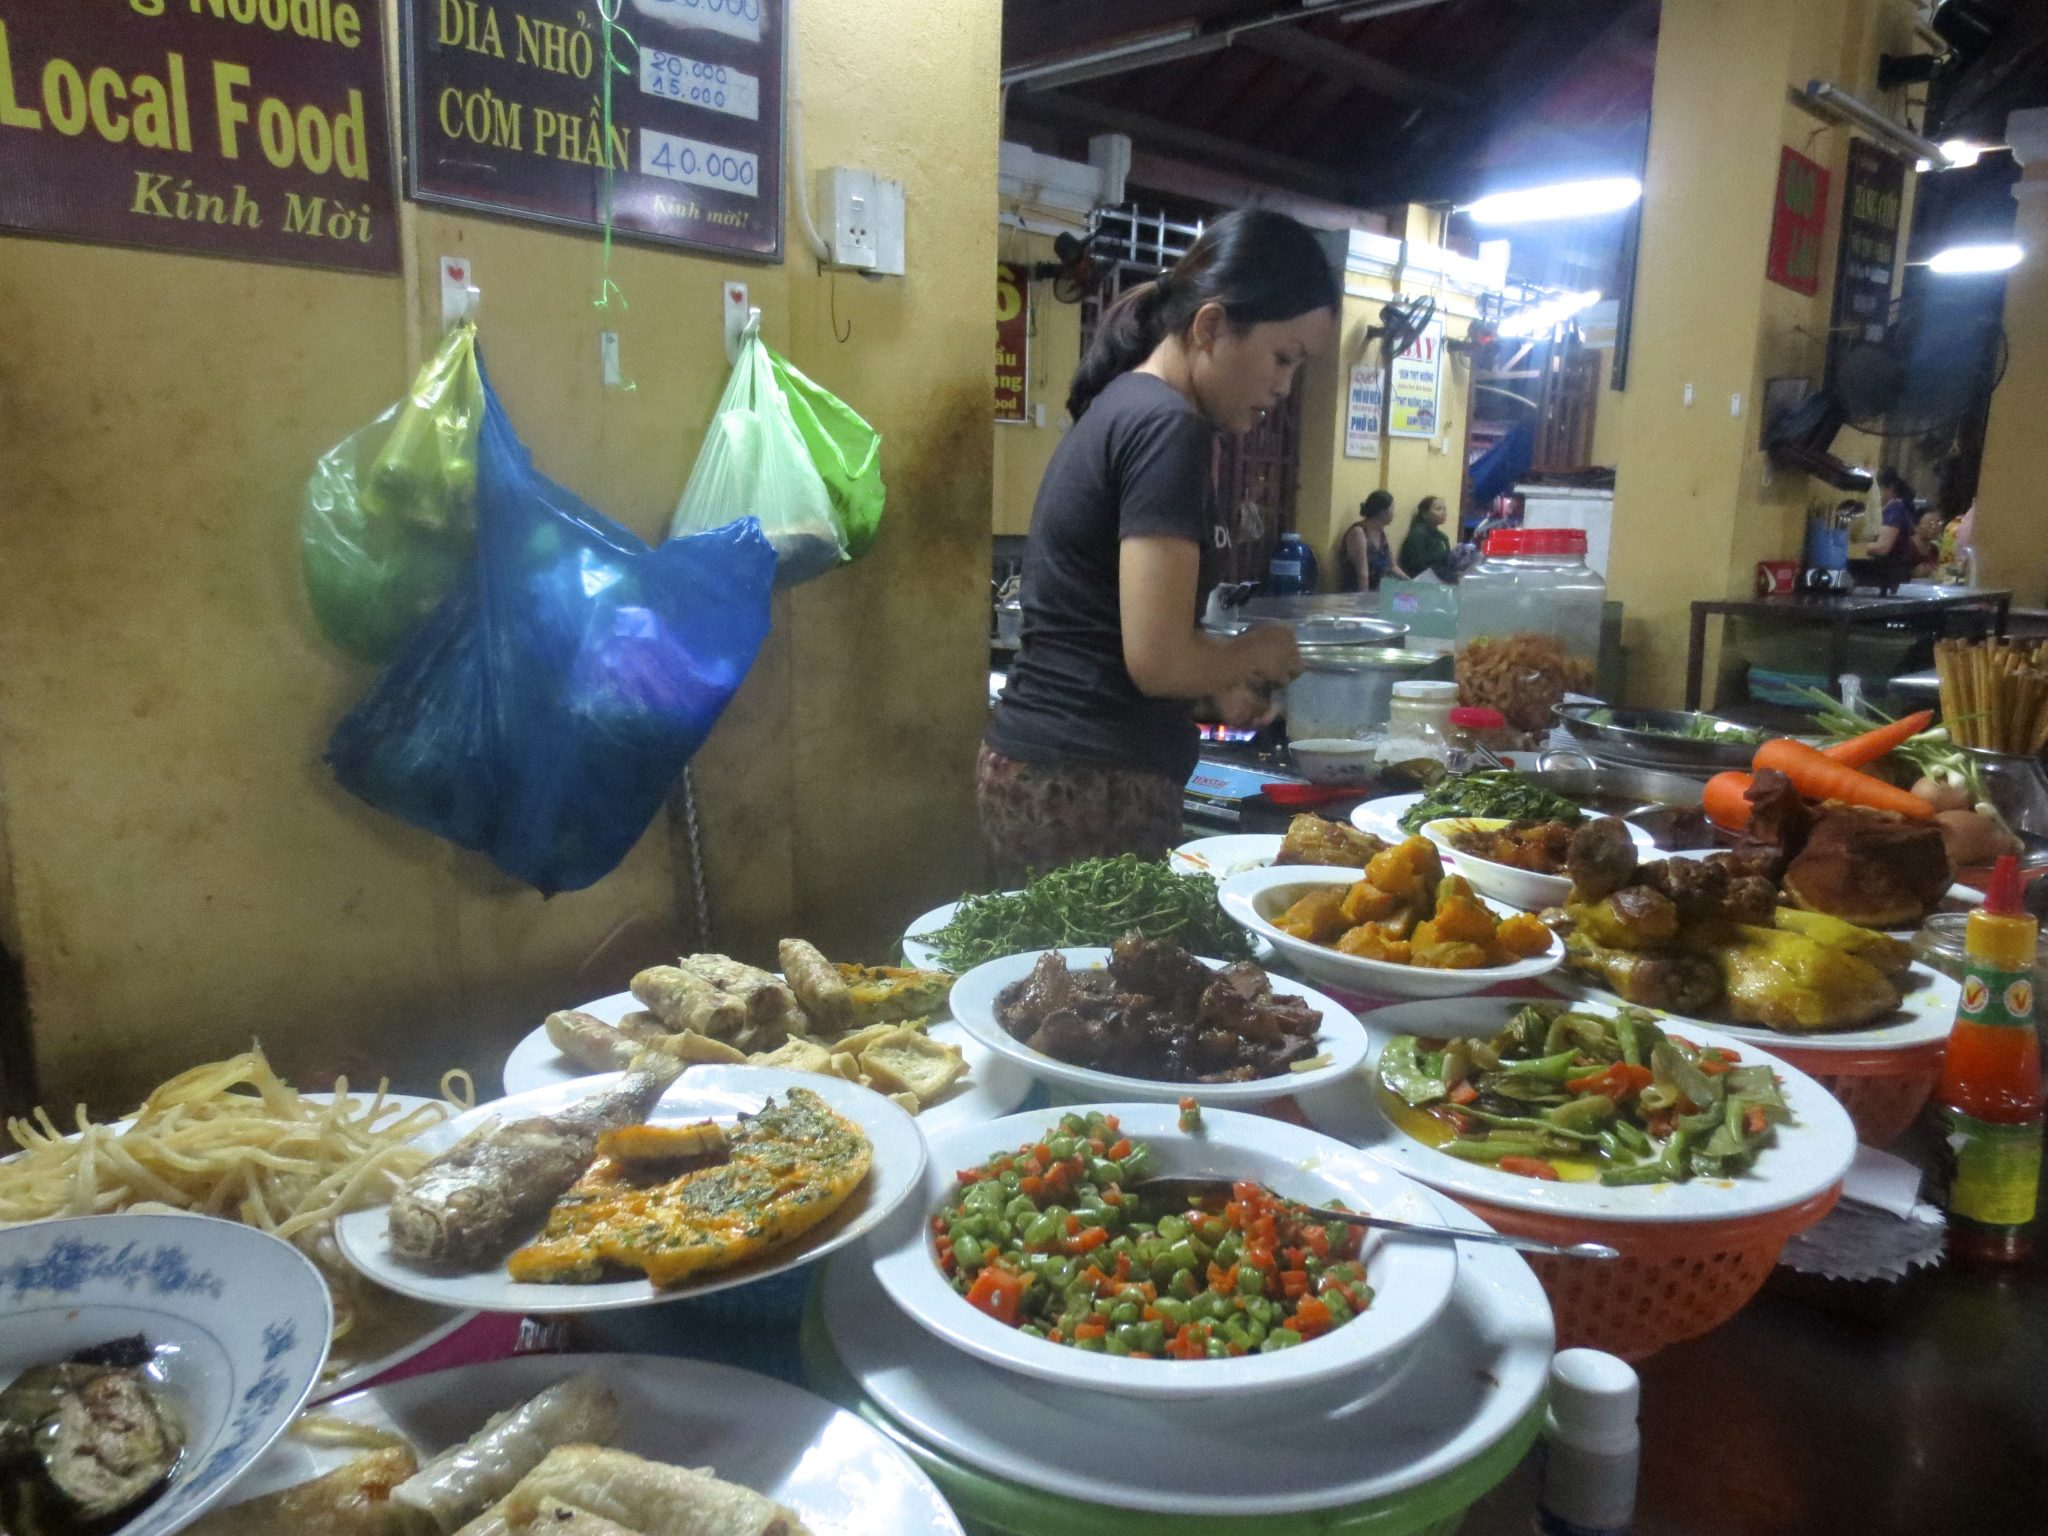 Buffet Style Food Stall at the Central Market